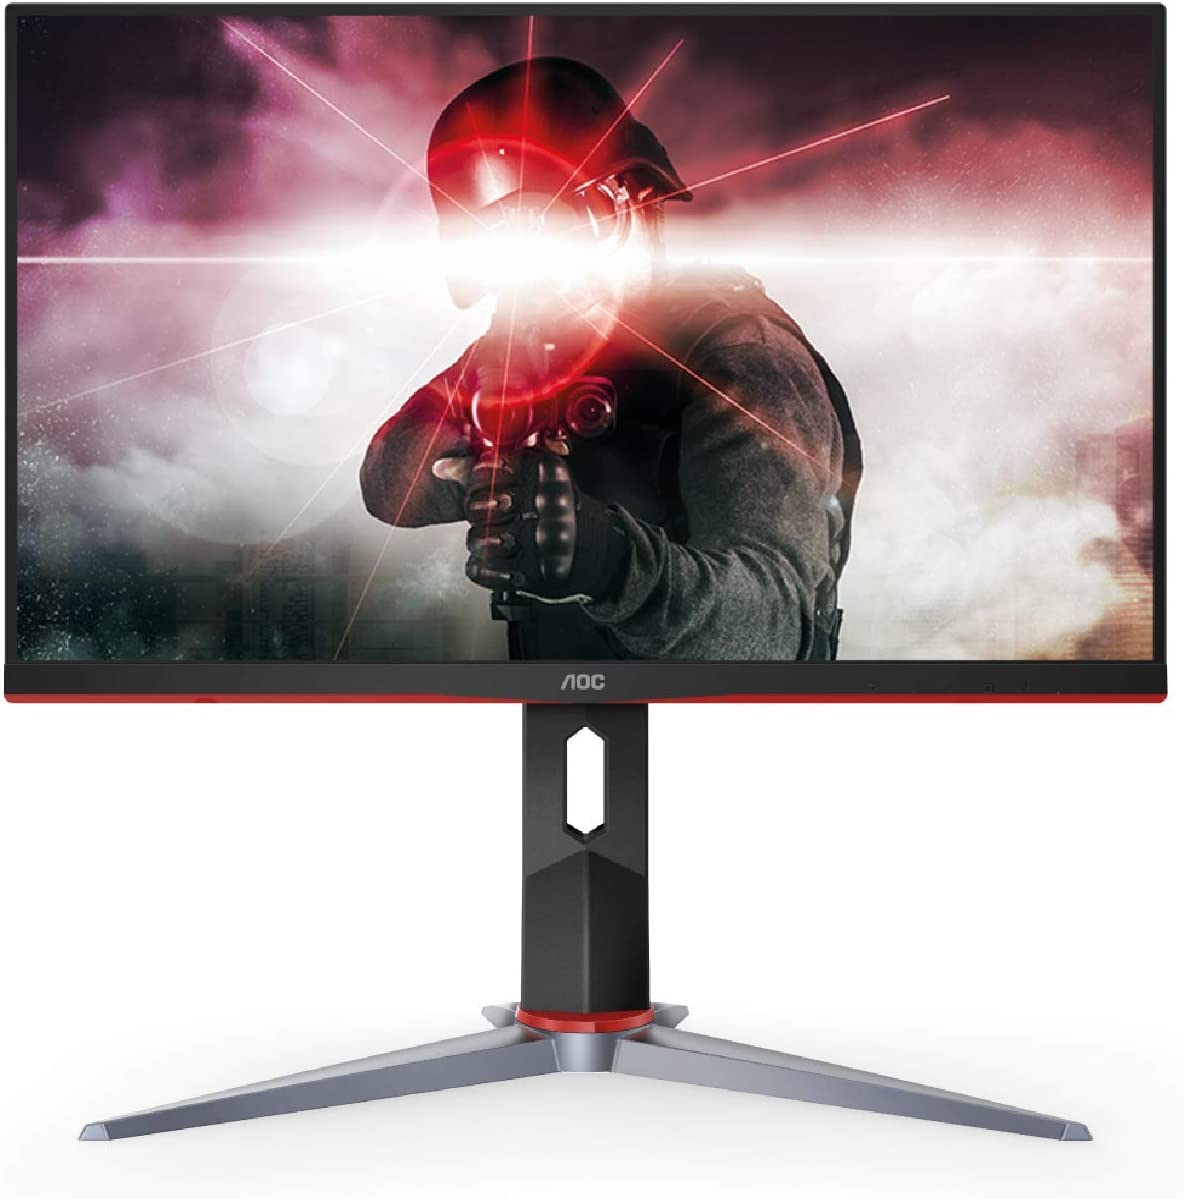 "AOC 27G2 27"" Frameless Gaming IPS Monitor, FHD 1080P, 1ms 144Hz, NVIDIA G-SYNC Compatible + Adaptive-Sync, Height Adjustable, 3-Year Zero Dead Pixel Guarantee, Black/Red"